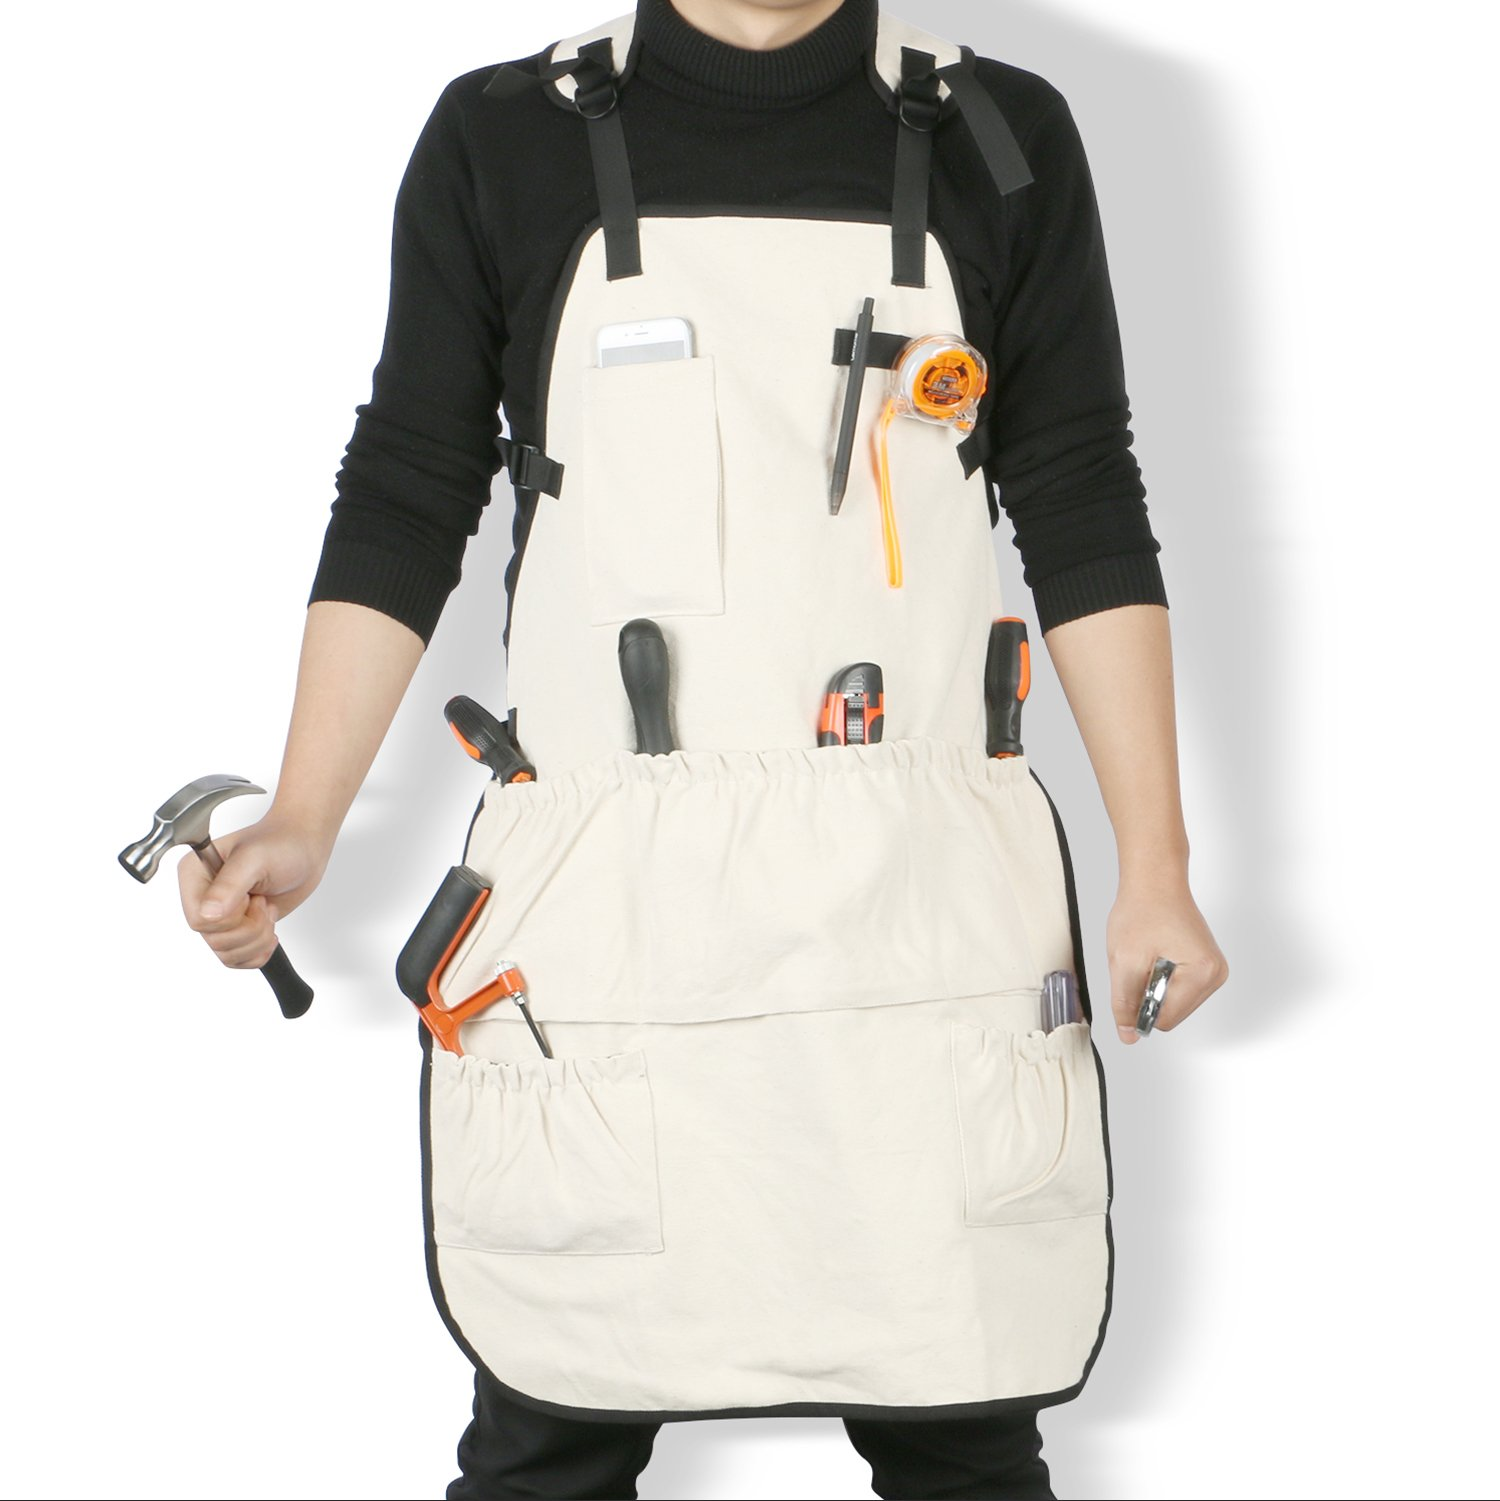 Jeezero Full Coverage Heavy-duty Pressure-free at Neck Carpentery Wood-working Bib Canvas Tool Apron with Pockets-XL